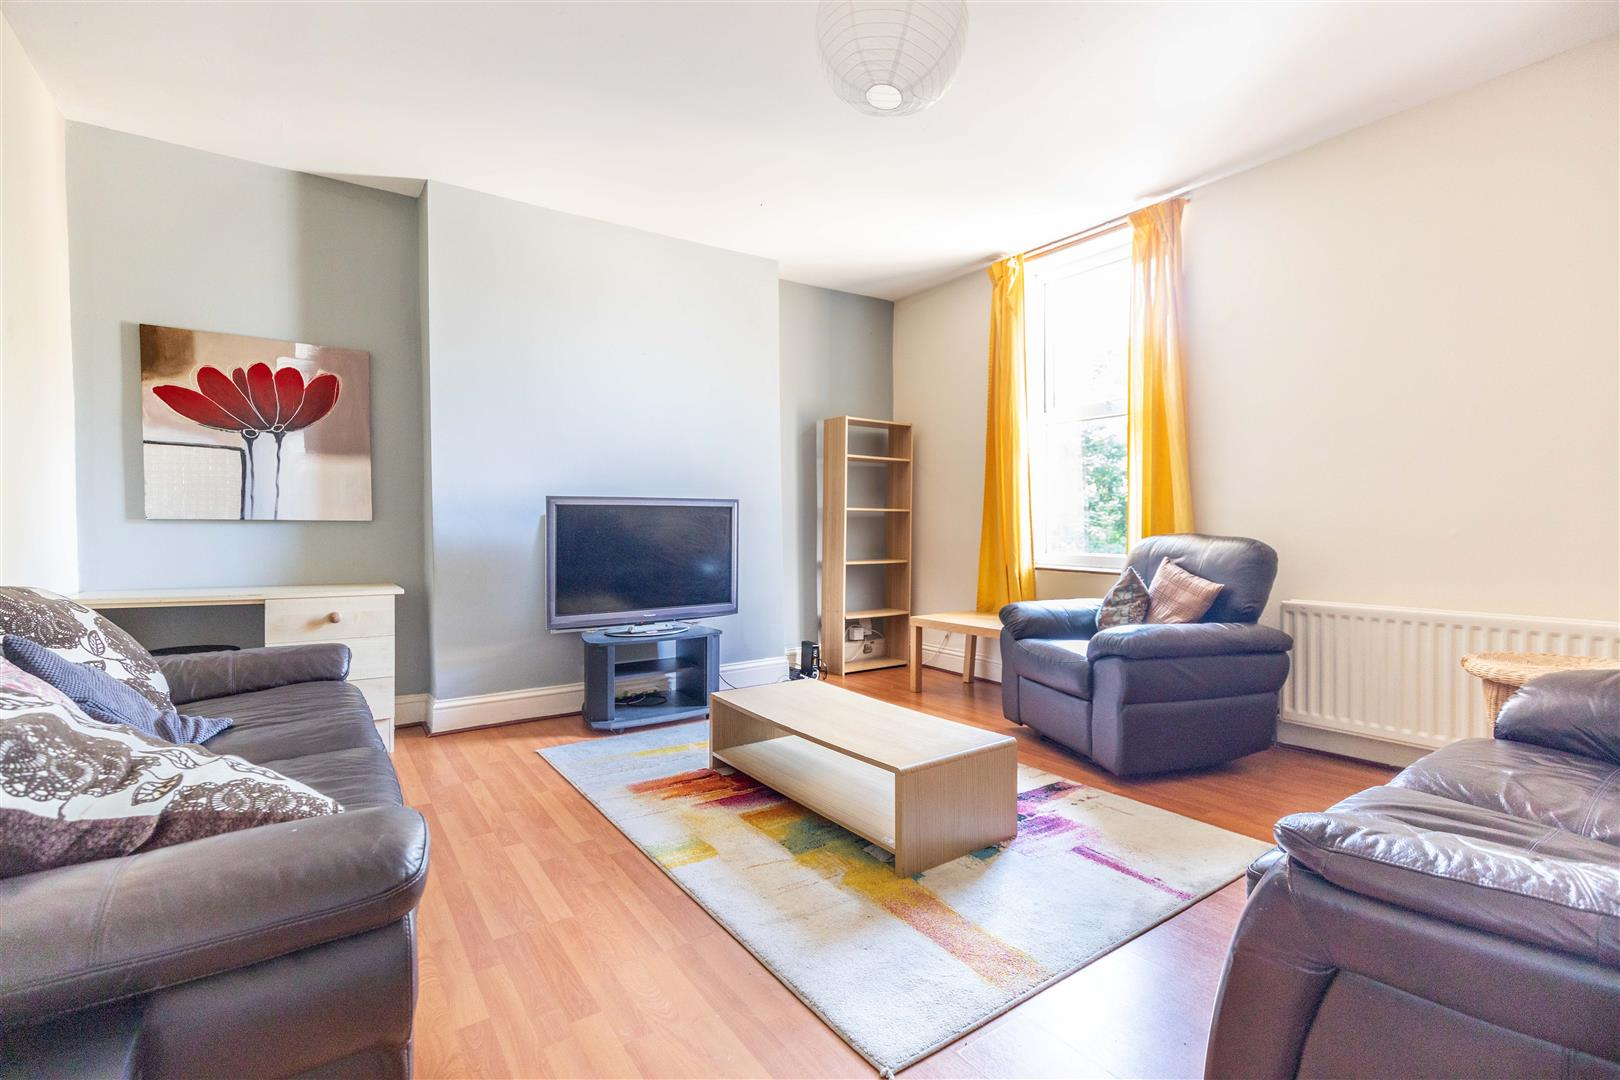 5 bed maisonette to rent in Newcastle Upon Tyne, NE6 5PB  - Property Image 1